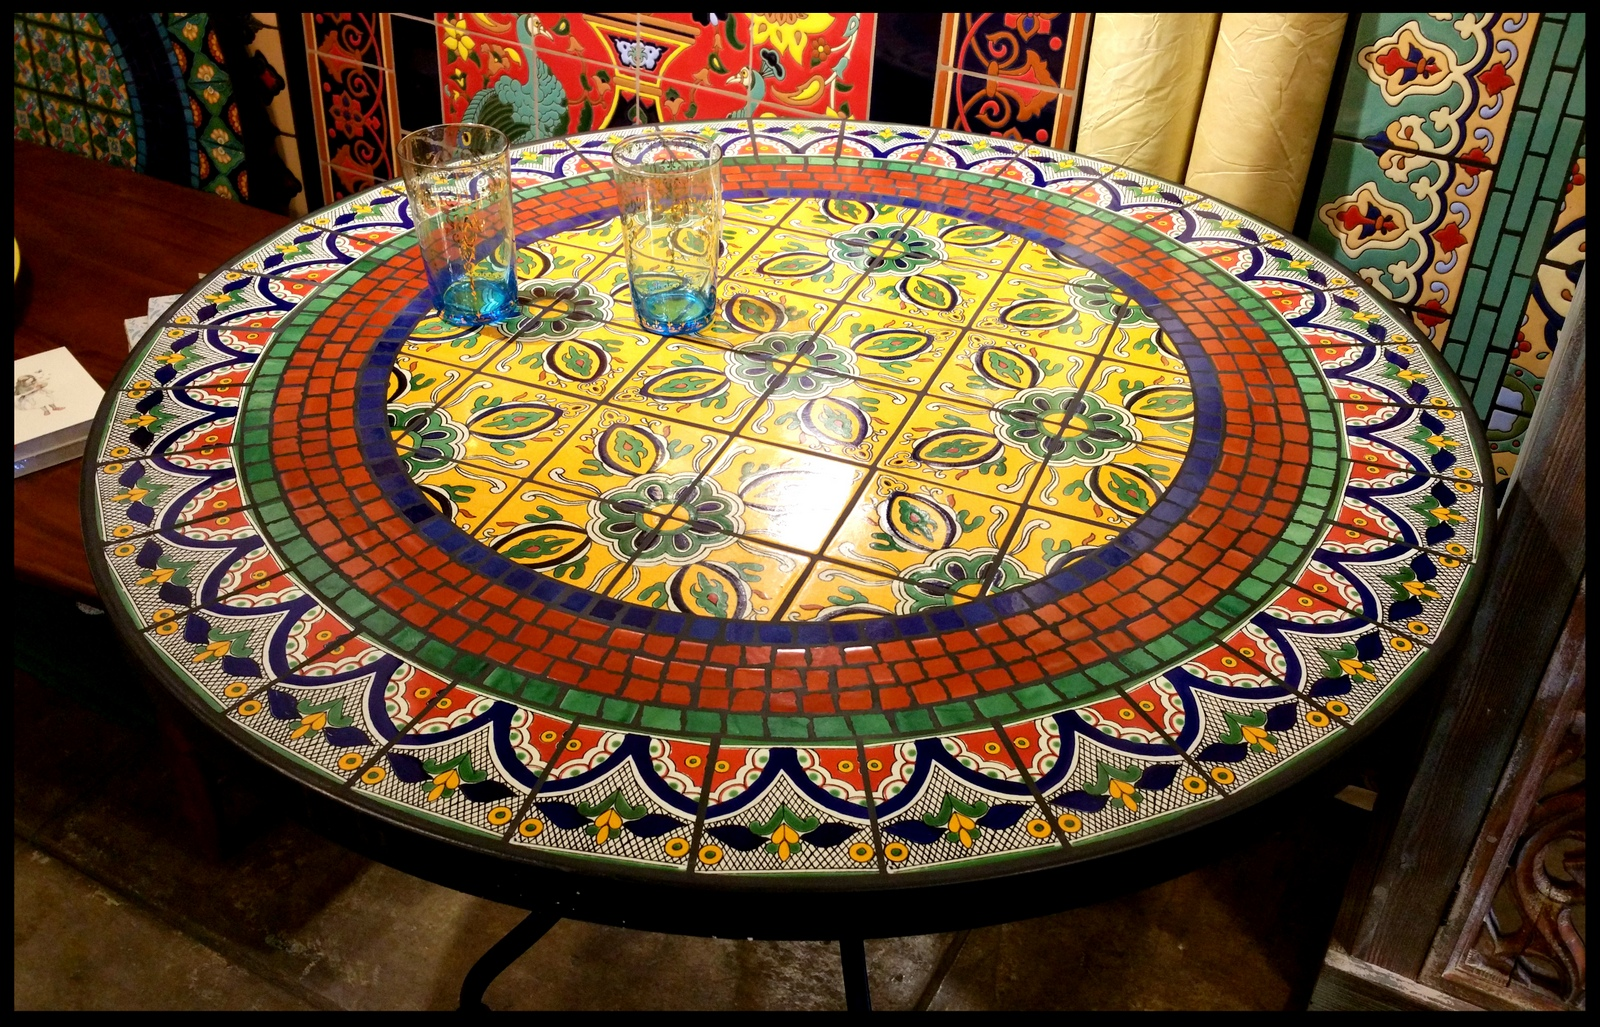 Tile and Glass Mosaic Tables : roundtalaveramosaictable from www.furthurla.com size 1600 x 1027 jpeg 945kB